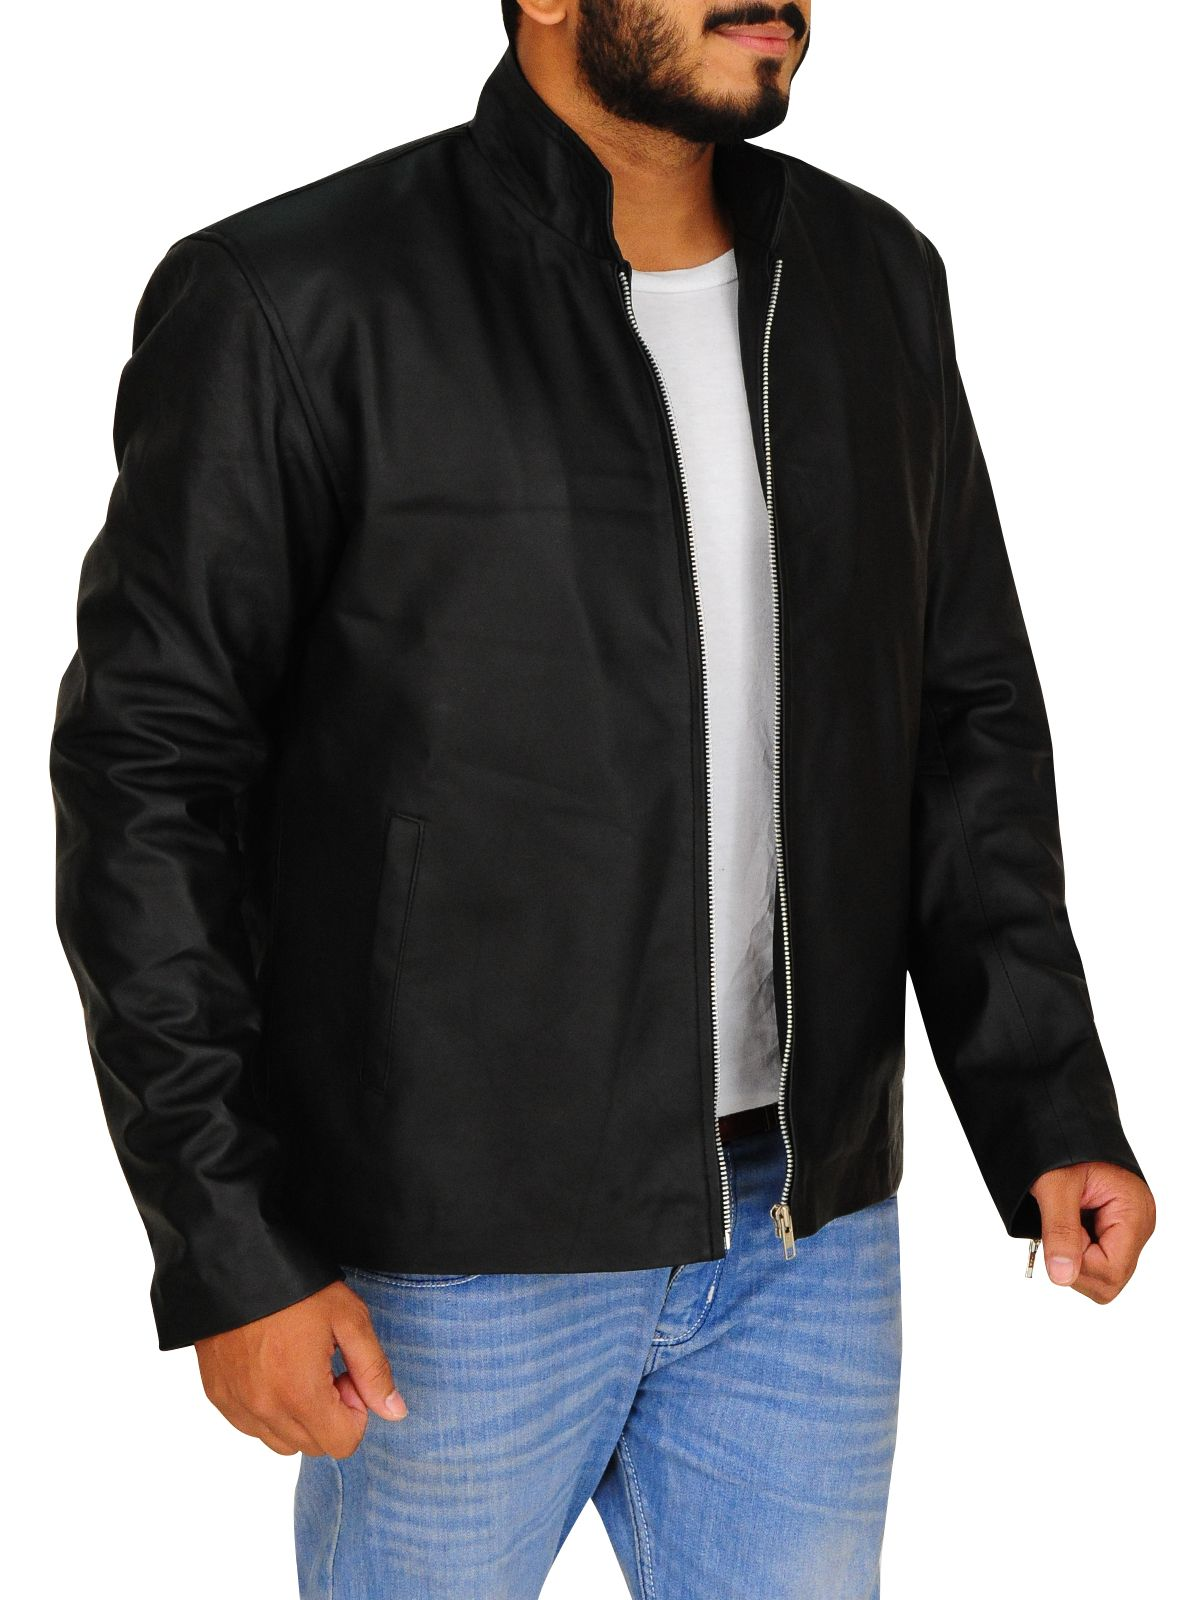 Pin by Top Celebs Jackets on Movies Jackets, Leather